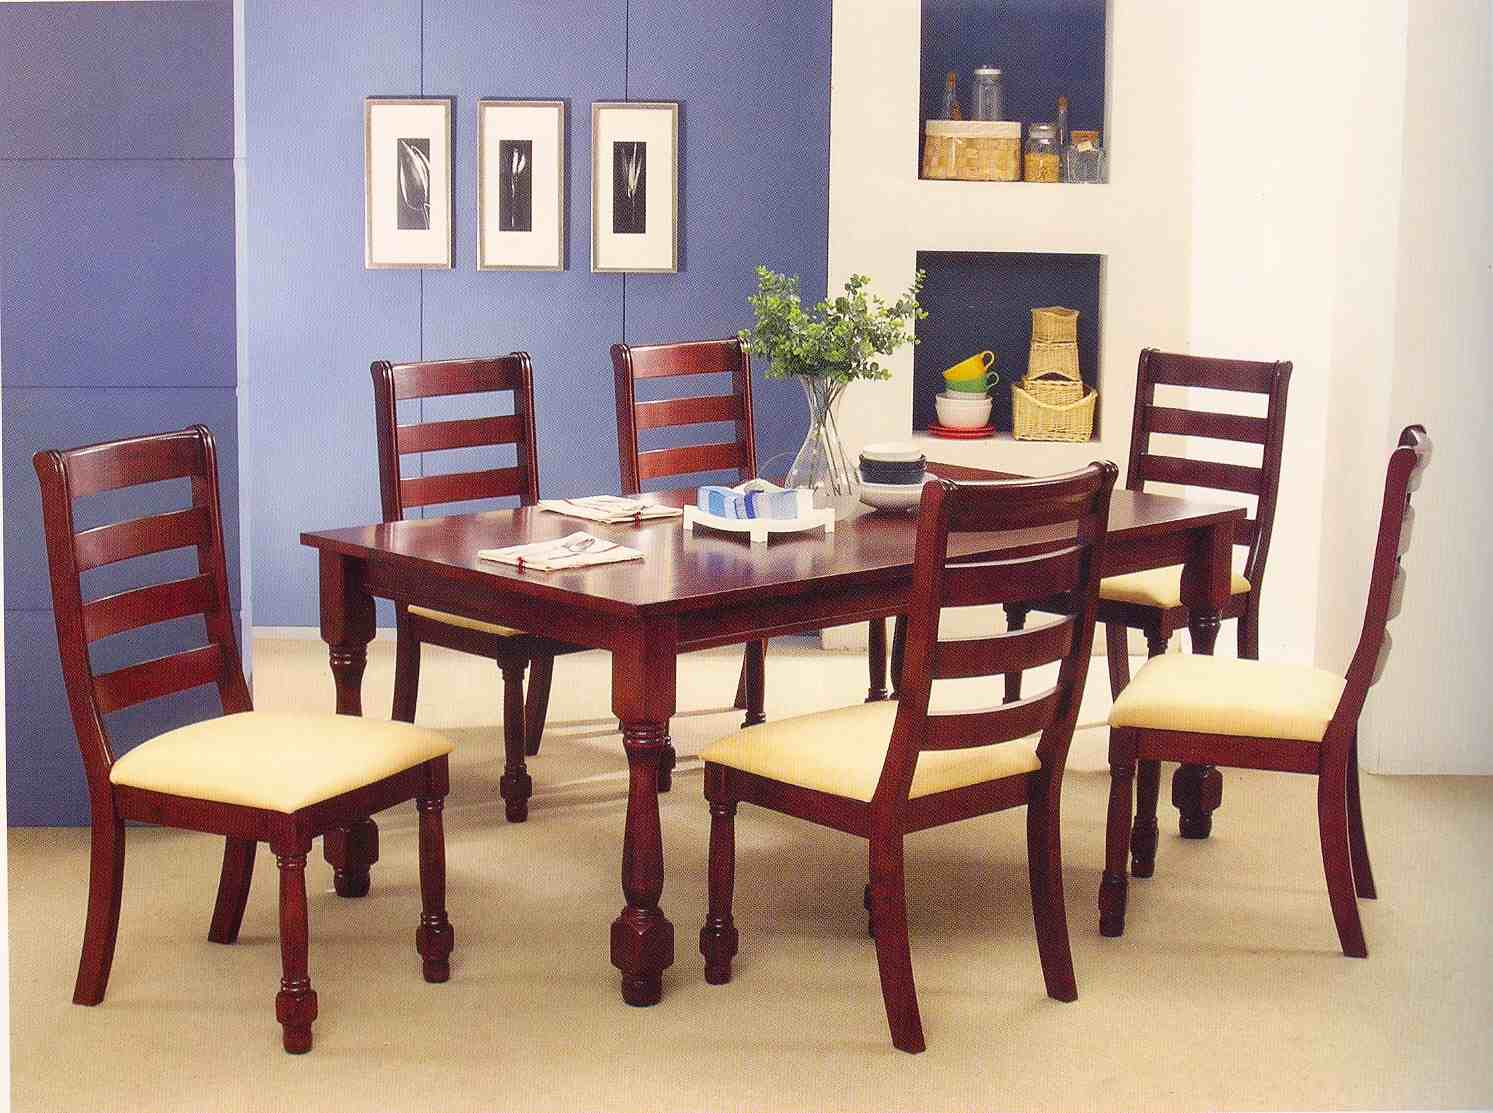 Dining room set for even more tastier meals home Dining set design ideas